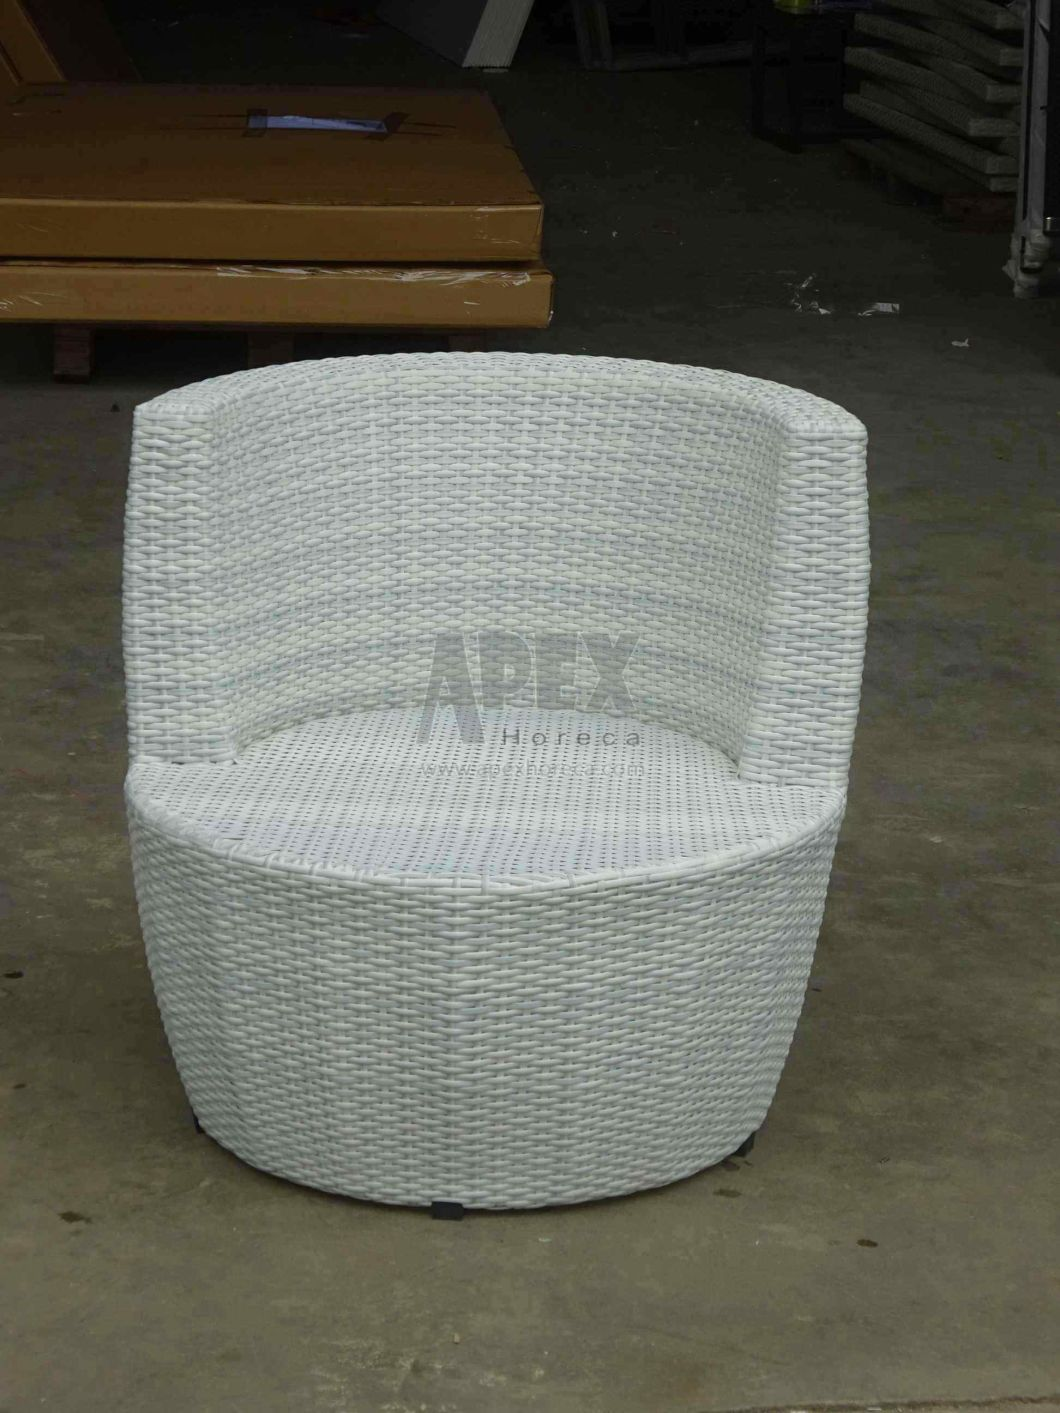 Wicker Sofa Set Outdoor Furniture Rattan Balcony Furniture Lounge Sofa